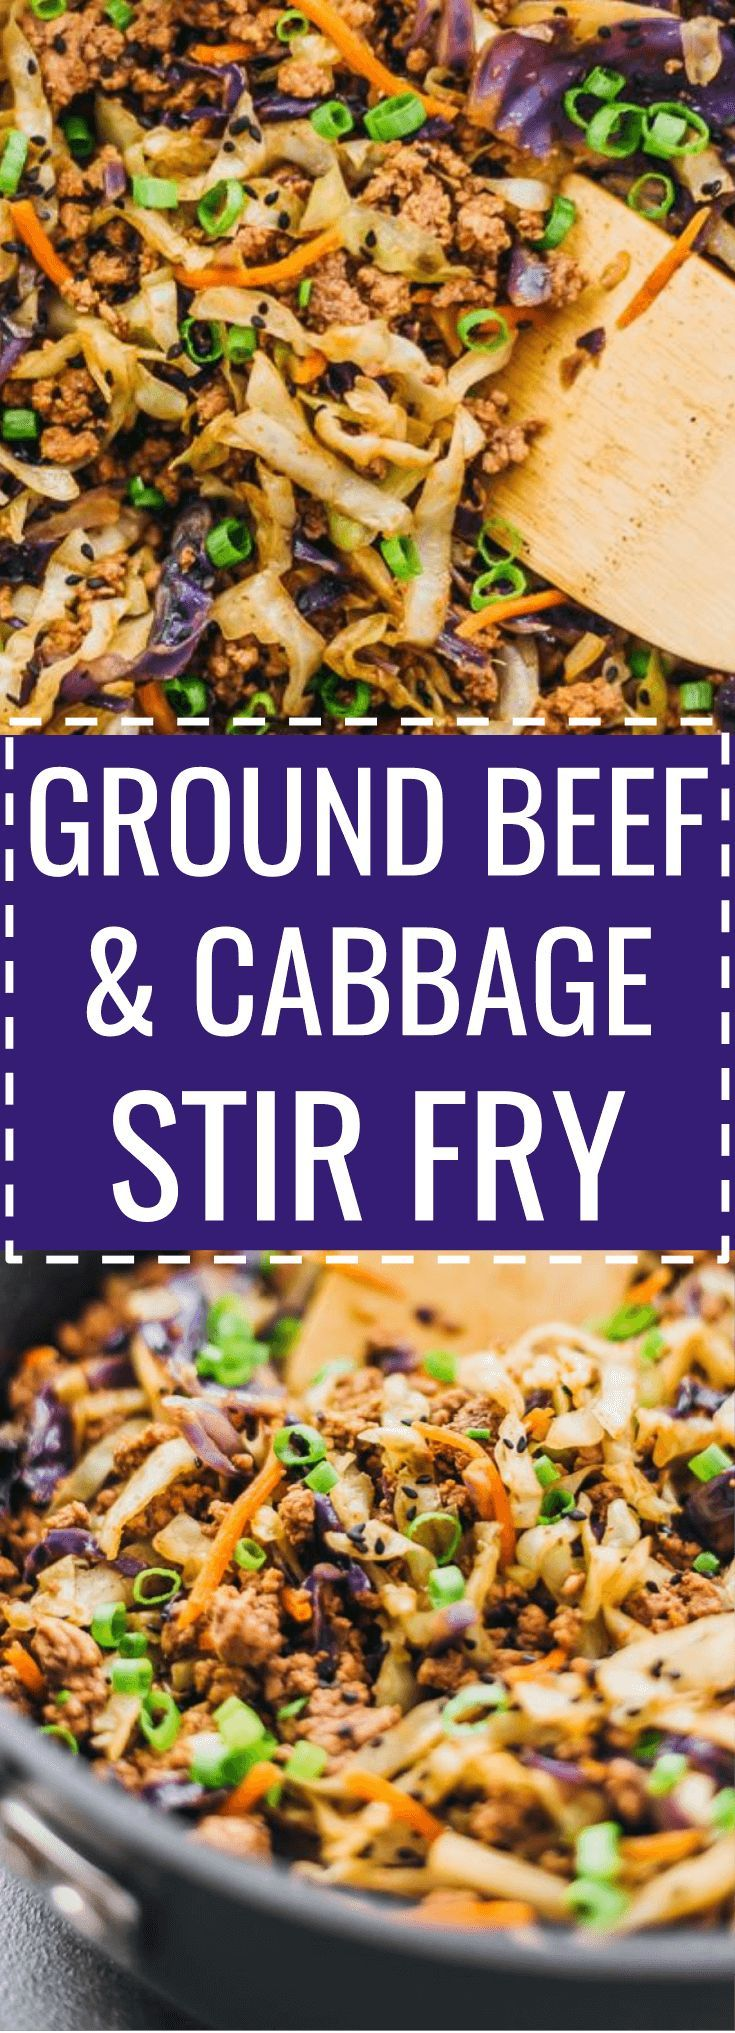 This Is A Super Fast And Easy Stir Fry Dinner With Ground Beef Cabbage Carrots And Scallions R Ground Beef And Cabbage Meat Dinners Dinner With Ground Beef